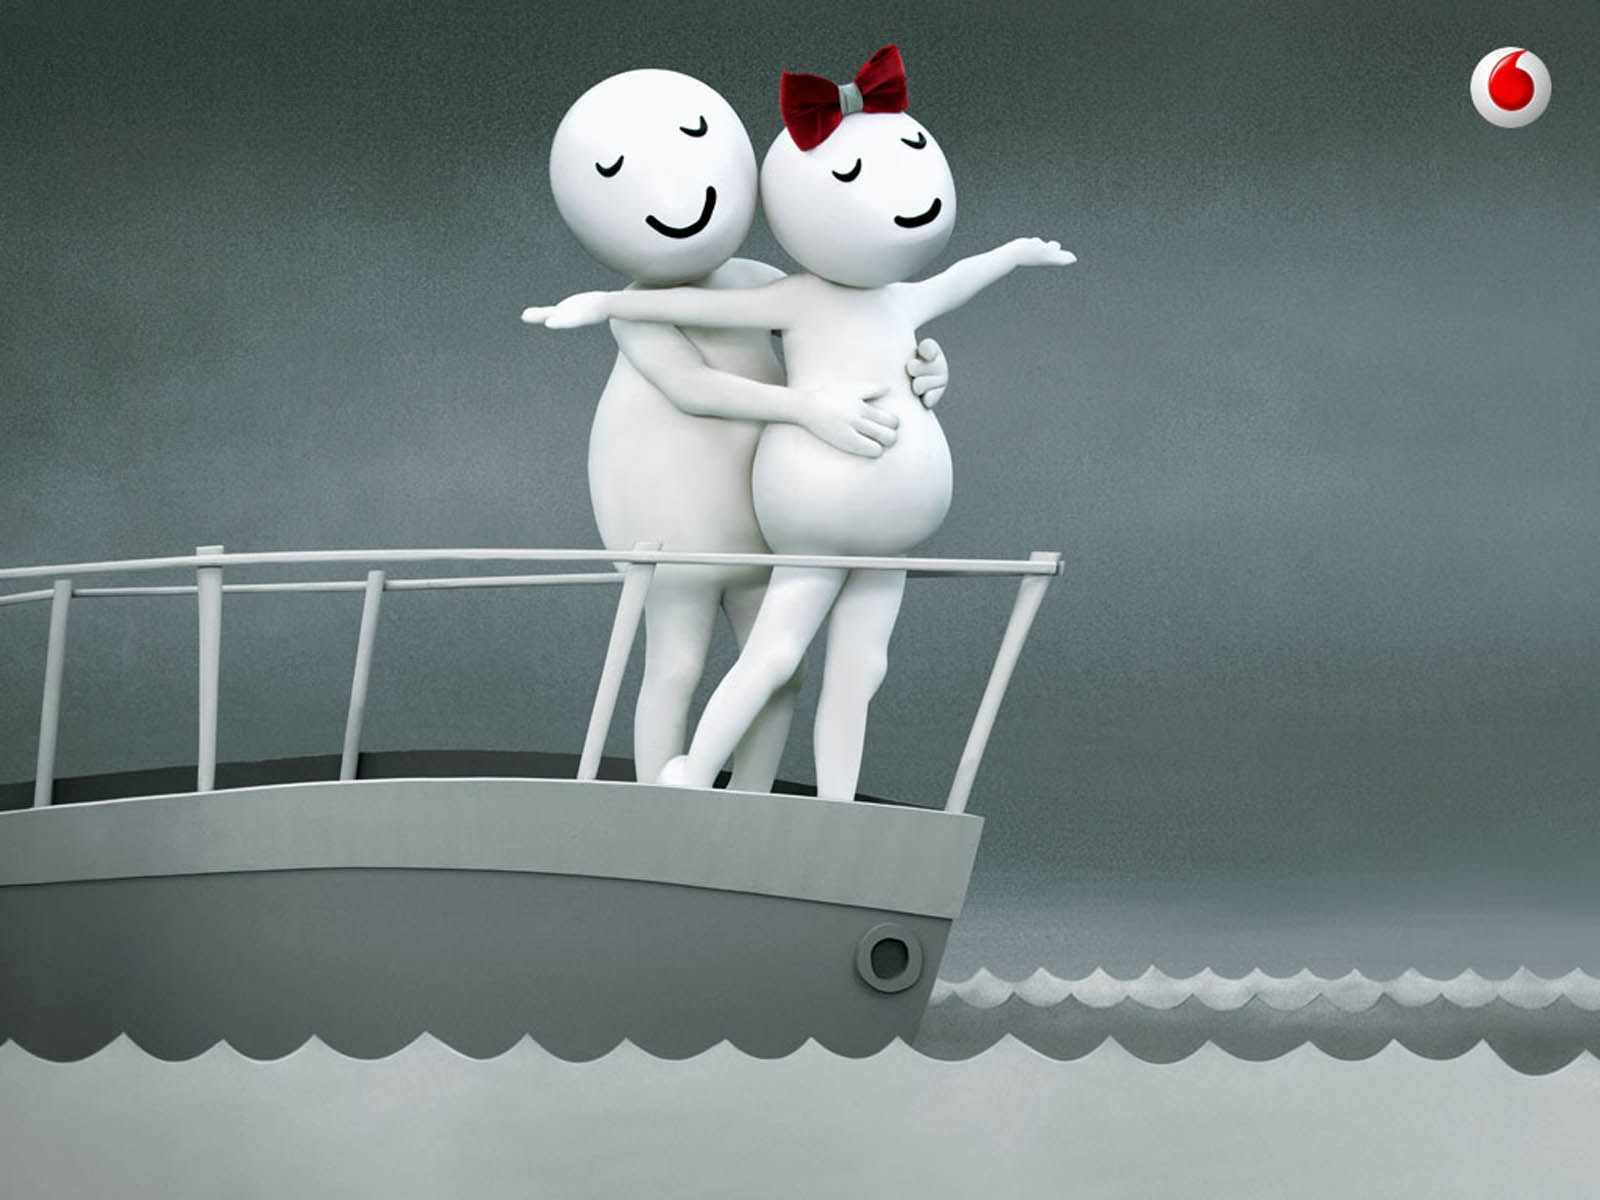 Zoozoo Love Wallpapers : Lovable Images: Vodafone Zoozoo Hd Wallpapers Free ...